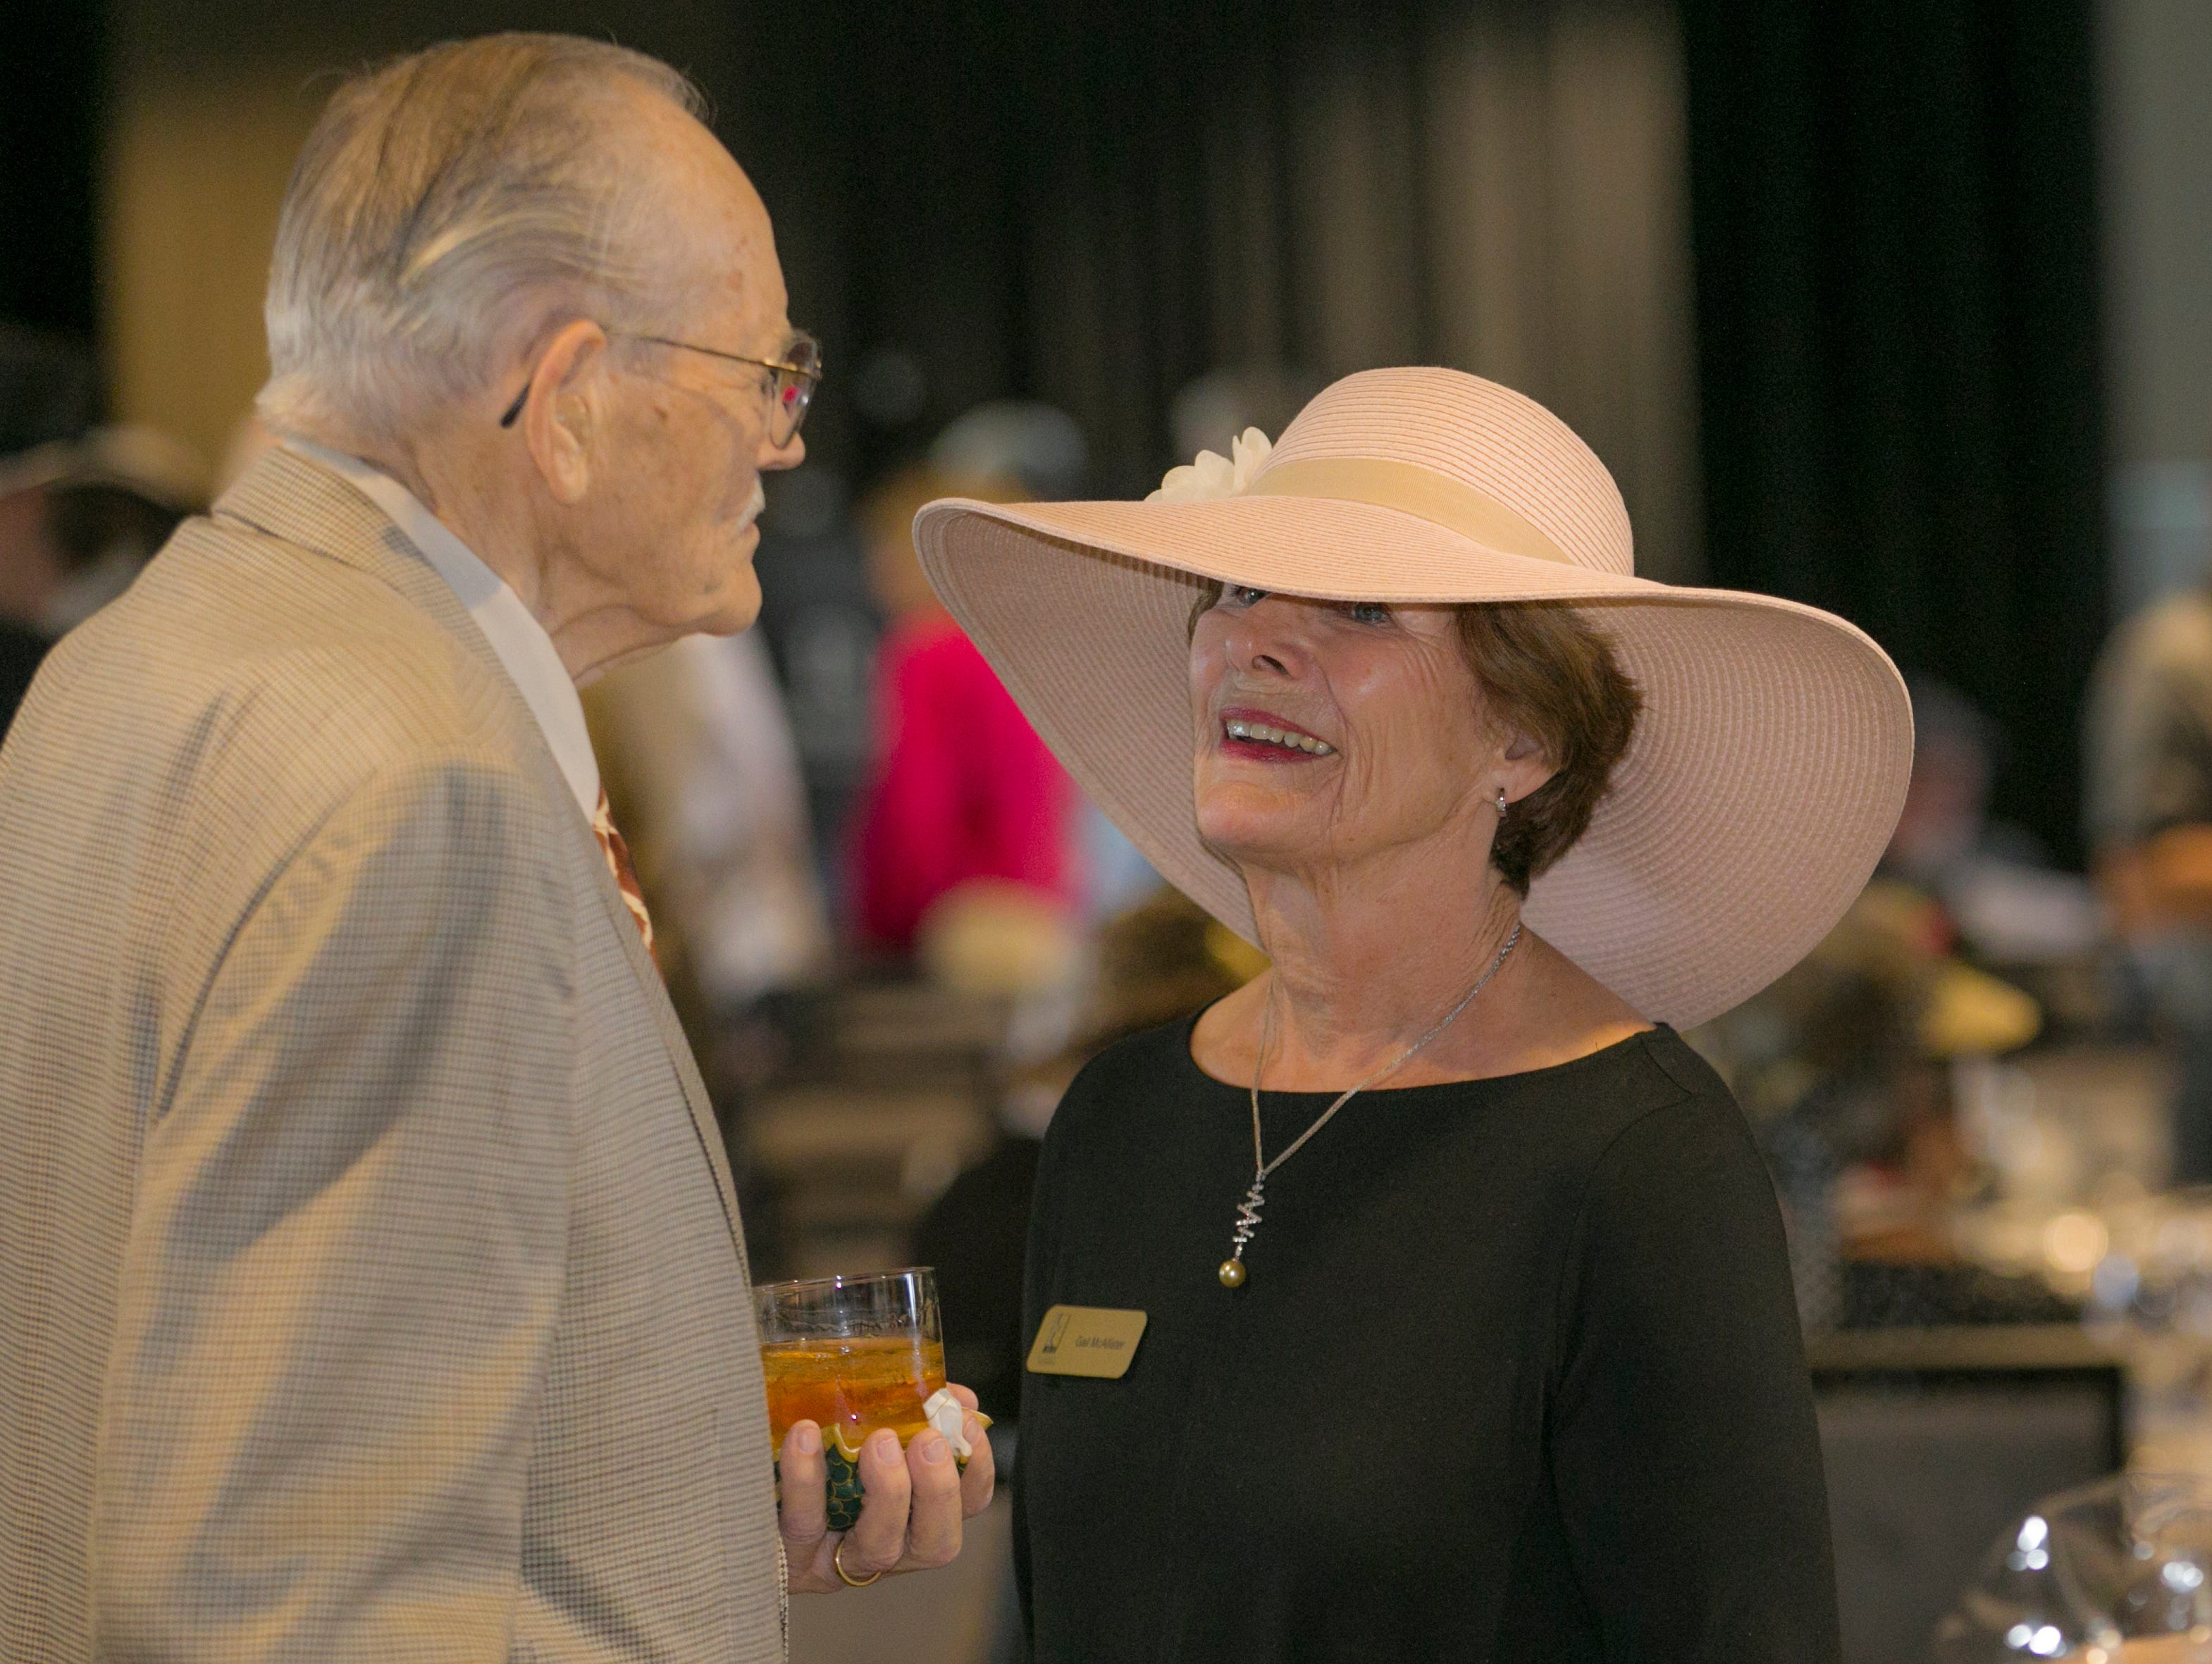 A photograph taken during the Derby Day fundraiser for the Reno Chamber Orchestra at the Renaissance Reno on Saturday, May 4, 2019.